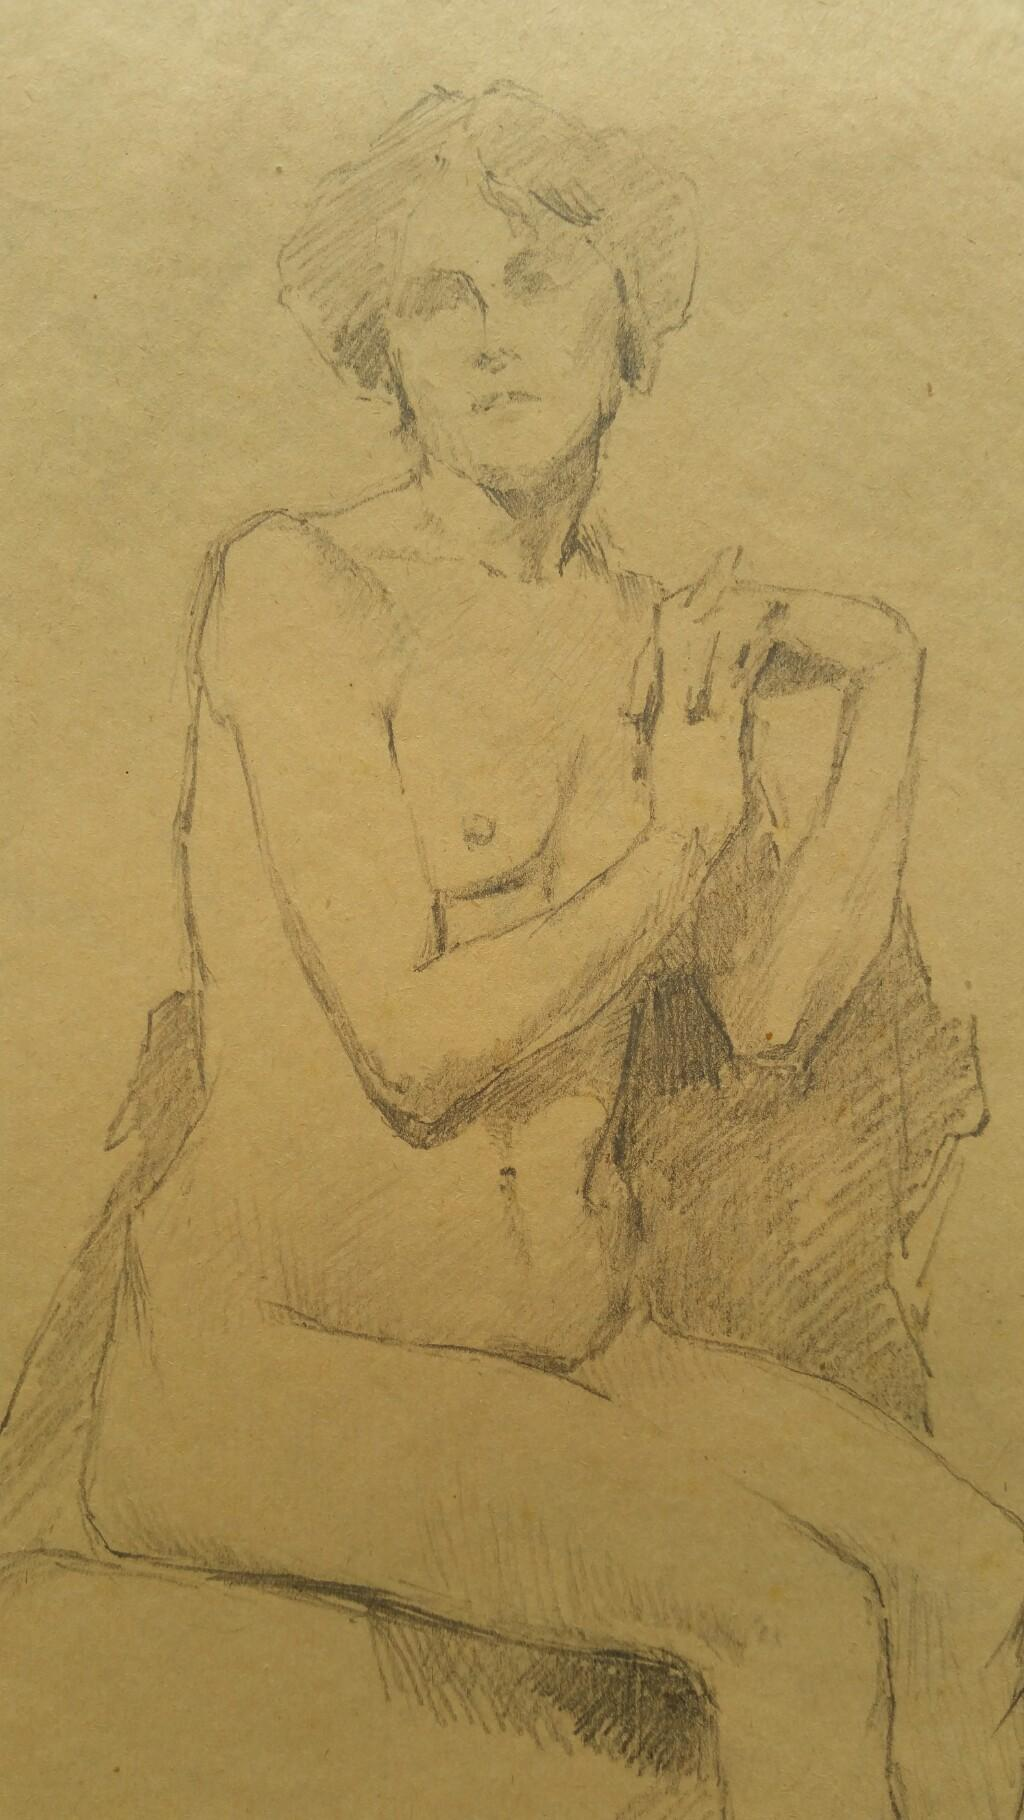 English Antique Portrait Sketch of Female Nude Seated (with additional image)